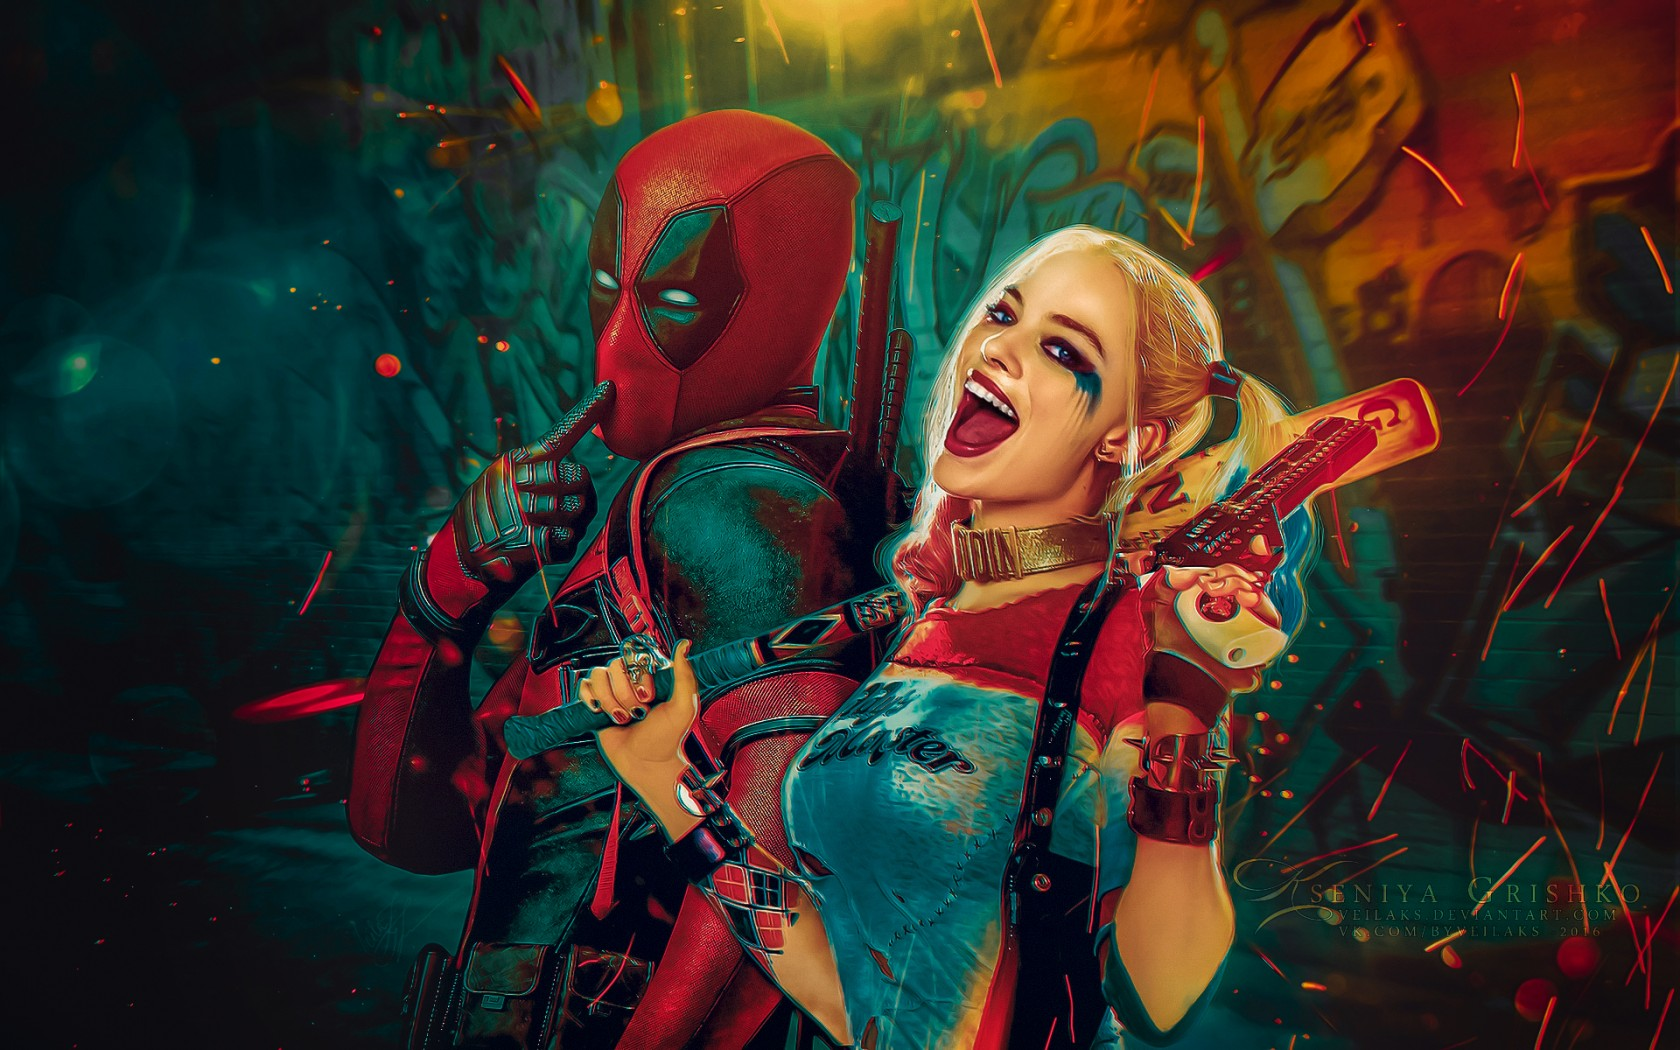 Harley Quinn Wallpapers HD Backgrounds, Images, Pics, Photos Free